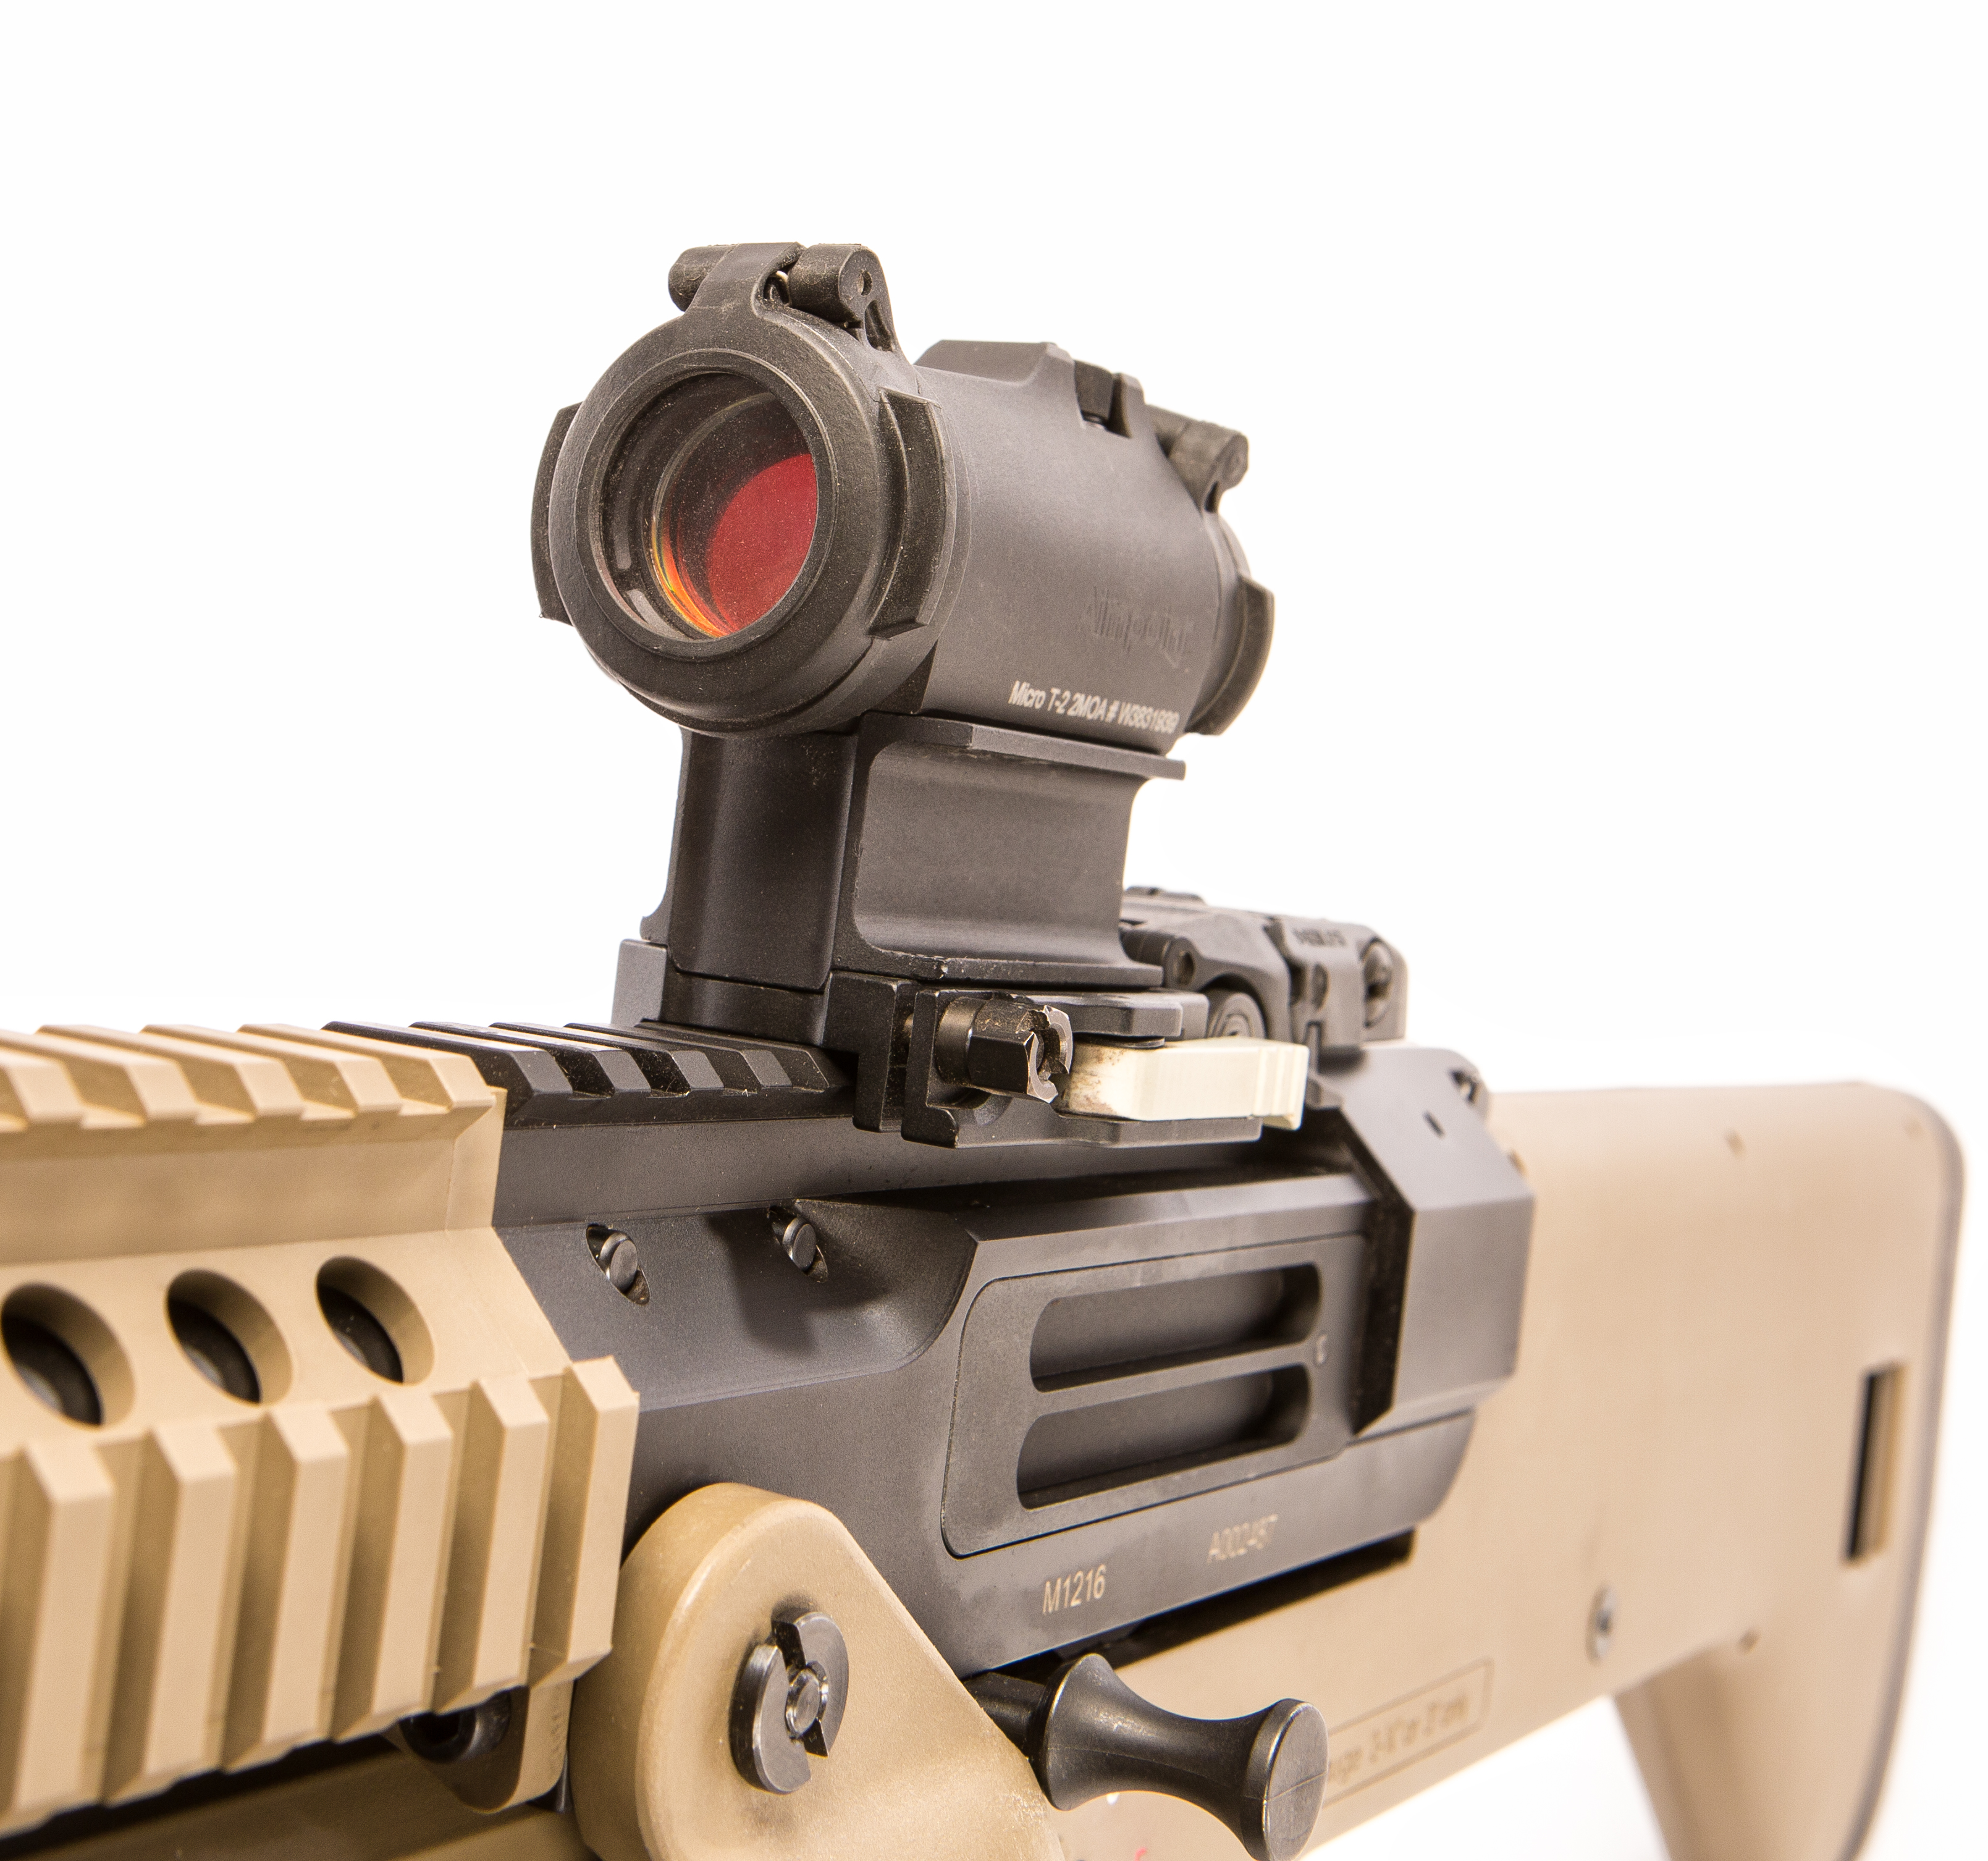 For evaluation, shotgun was equipped with Aimpoint Micro T-2 red dot sight.